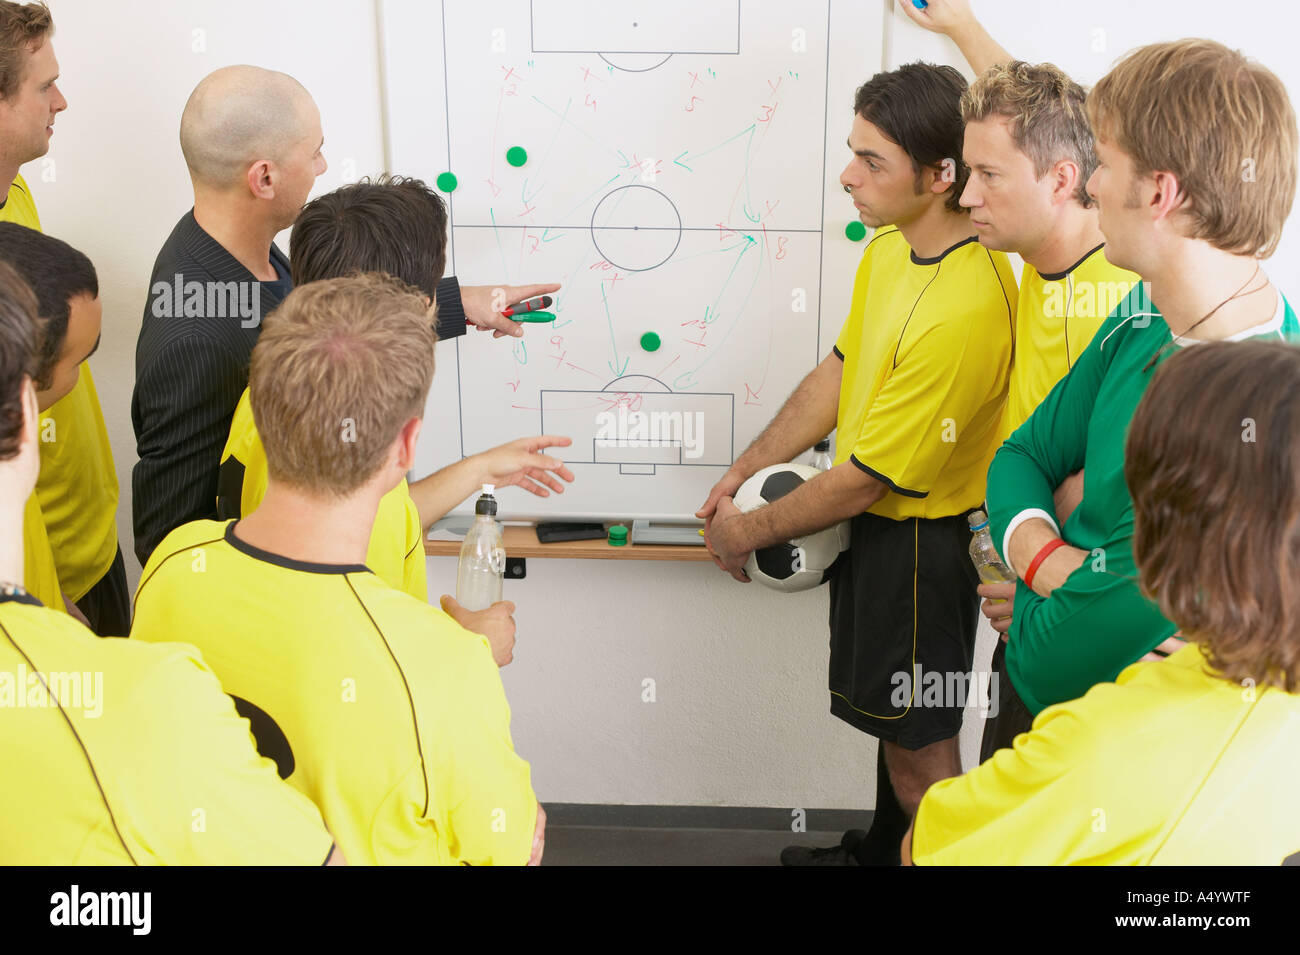 Coach discussing strategy with soccer team - Stock Image